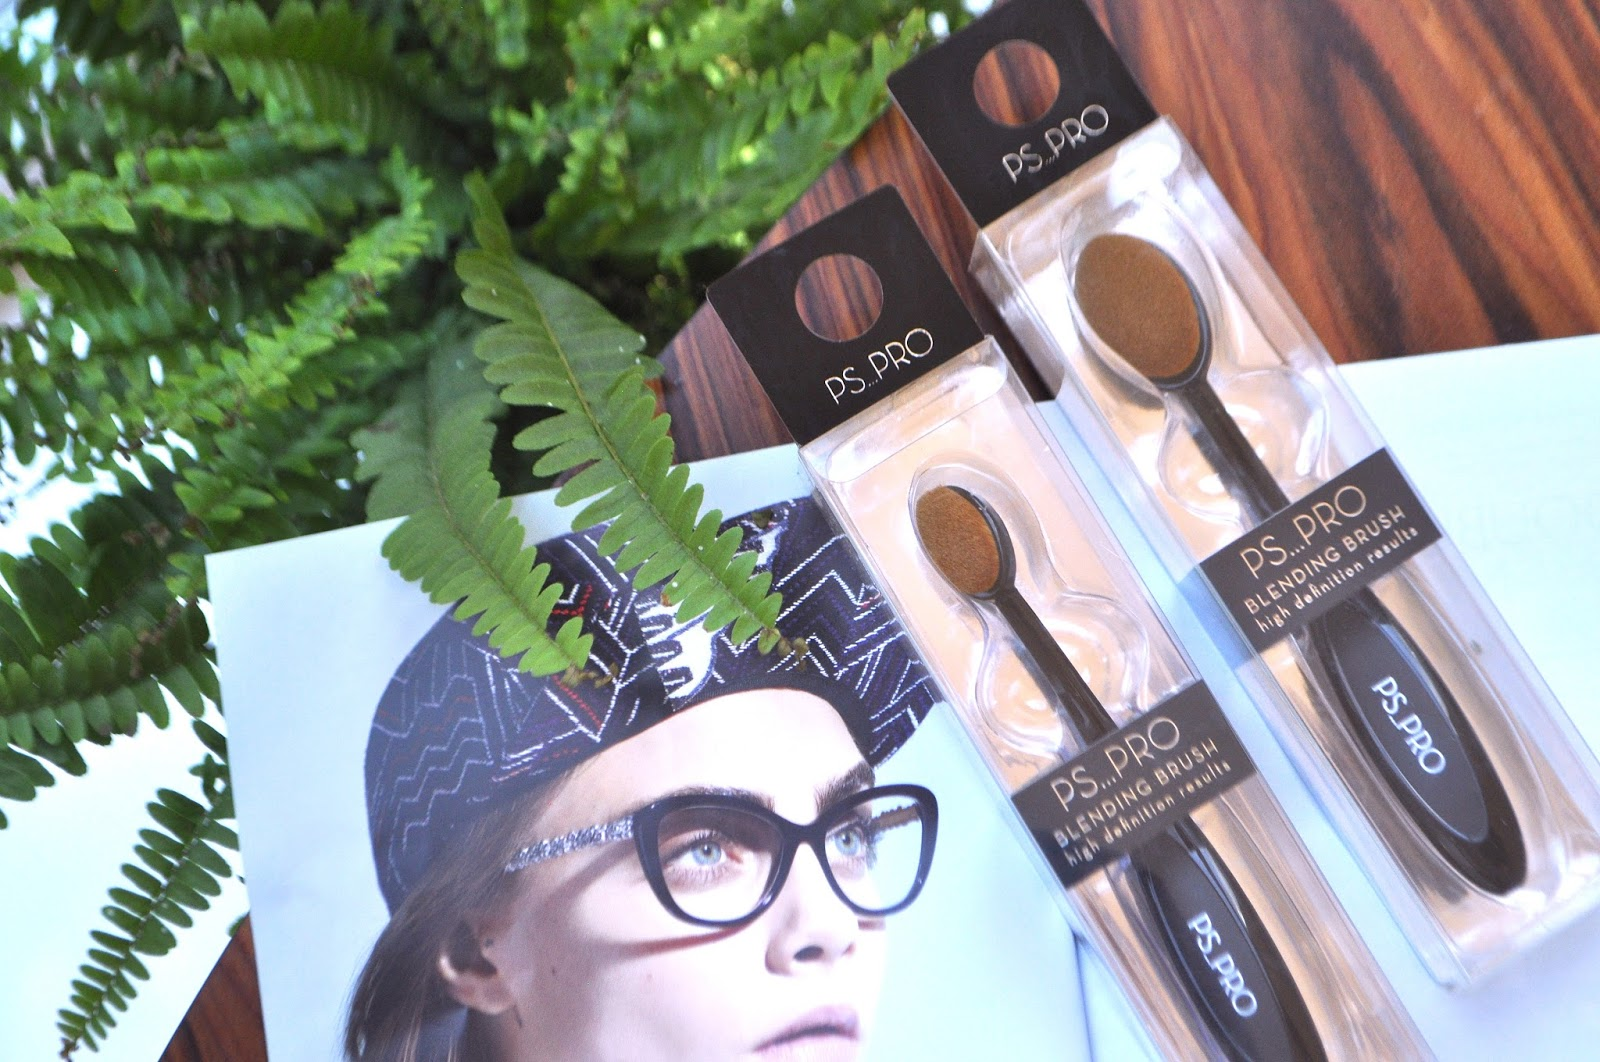 e7c65d057cc MEGA MAKEUP BRUSH DUPING! WOOOHOOO! PRIMARK PS PRO OVAL BLENDING BRUSH  REVIEW.